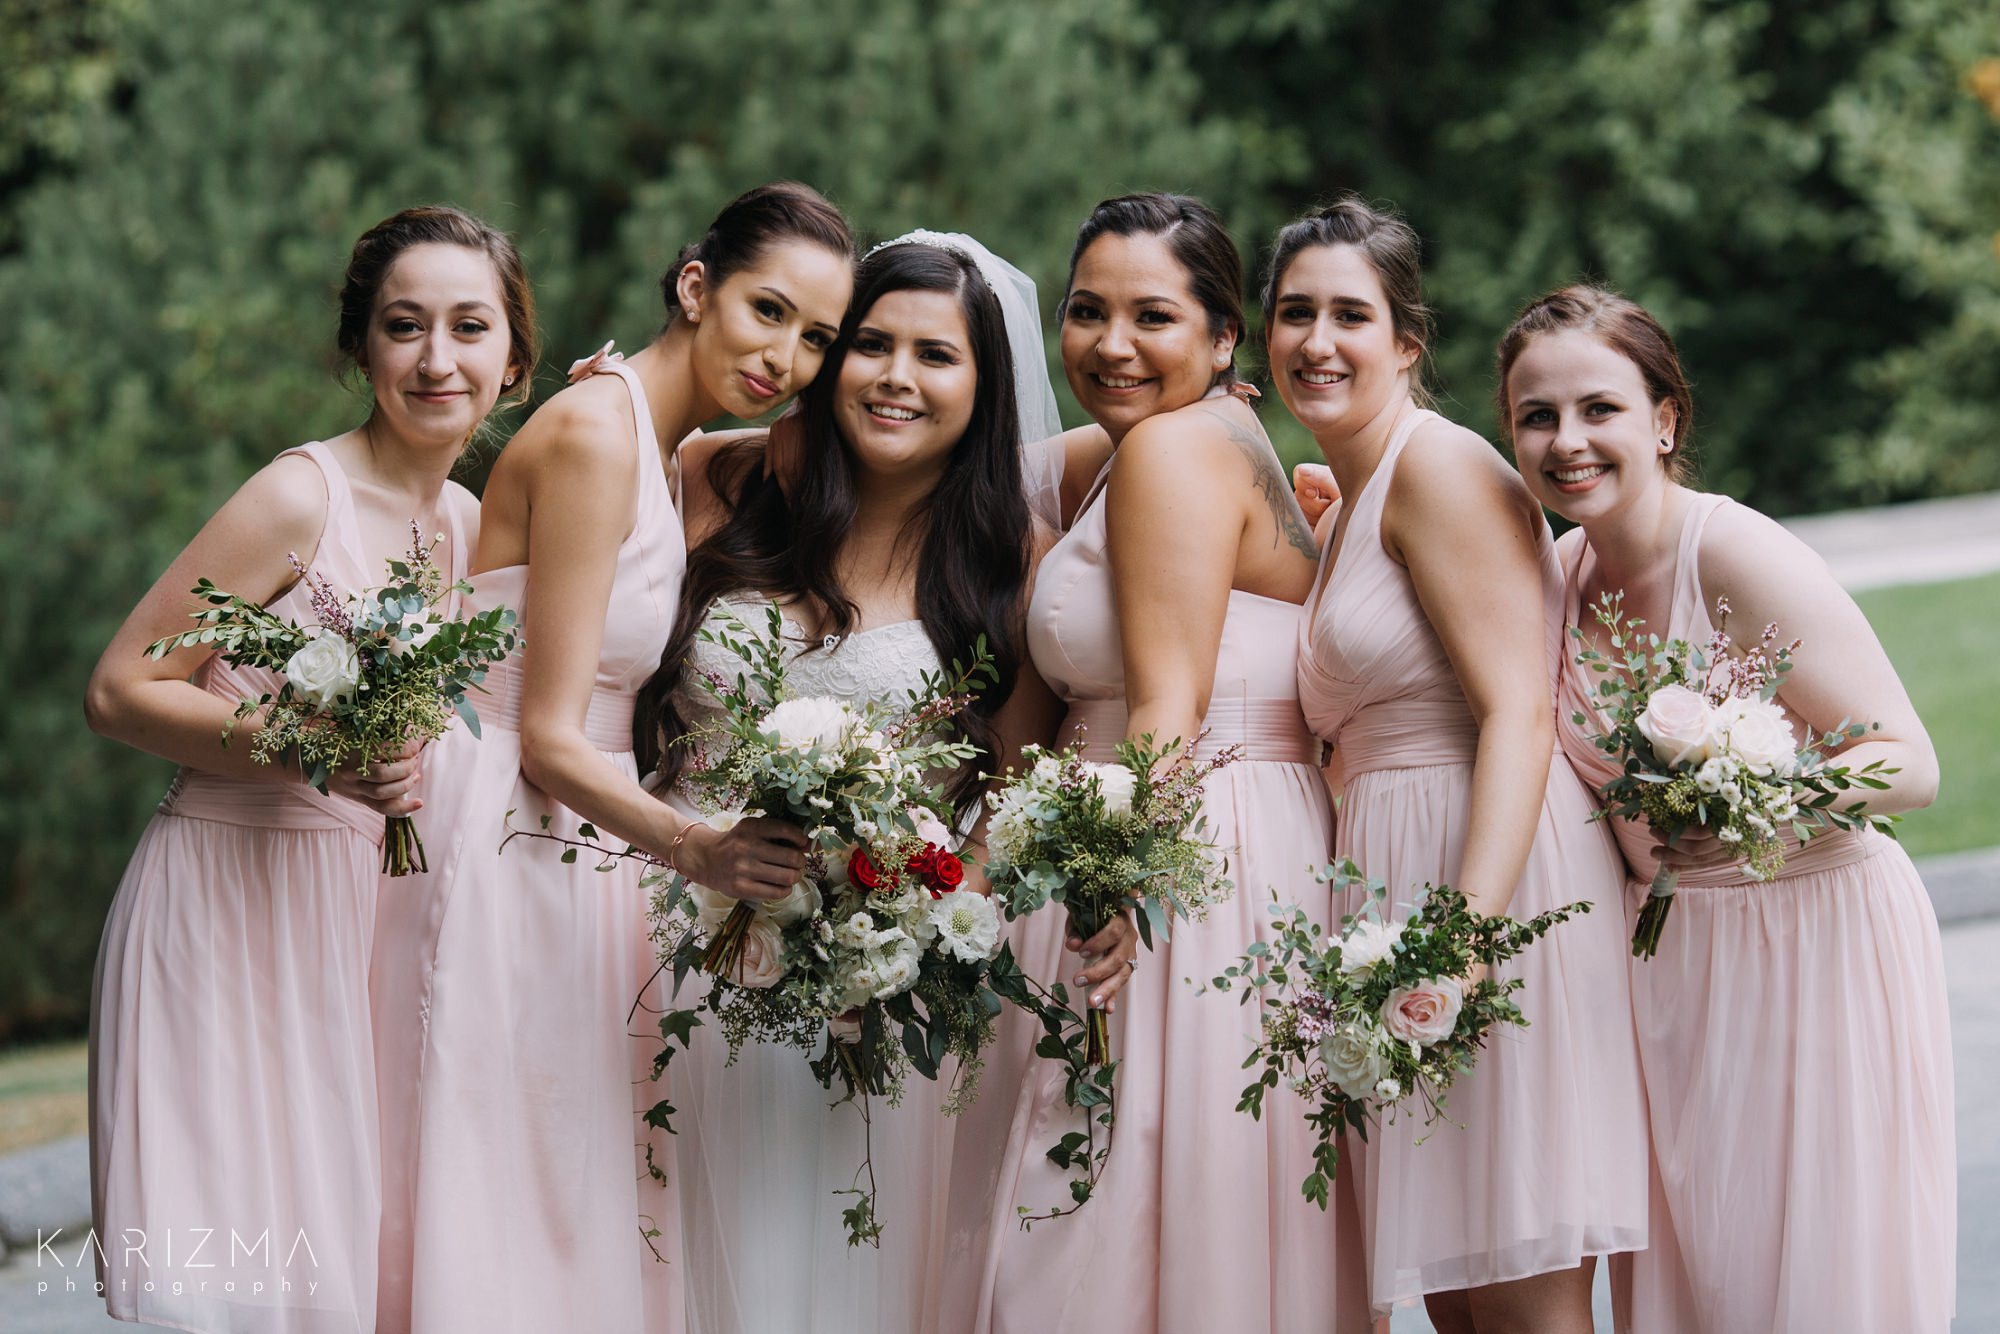 Furry Creek Golf Club Wedding bride and bridesmaids